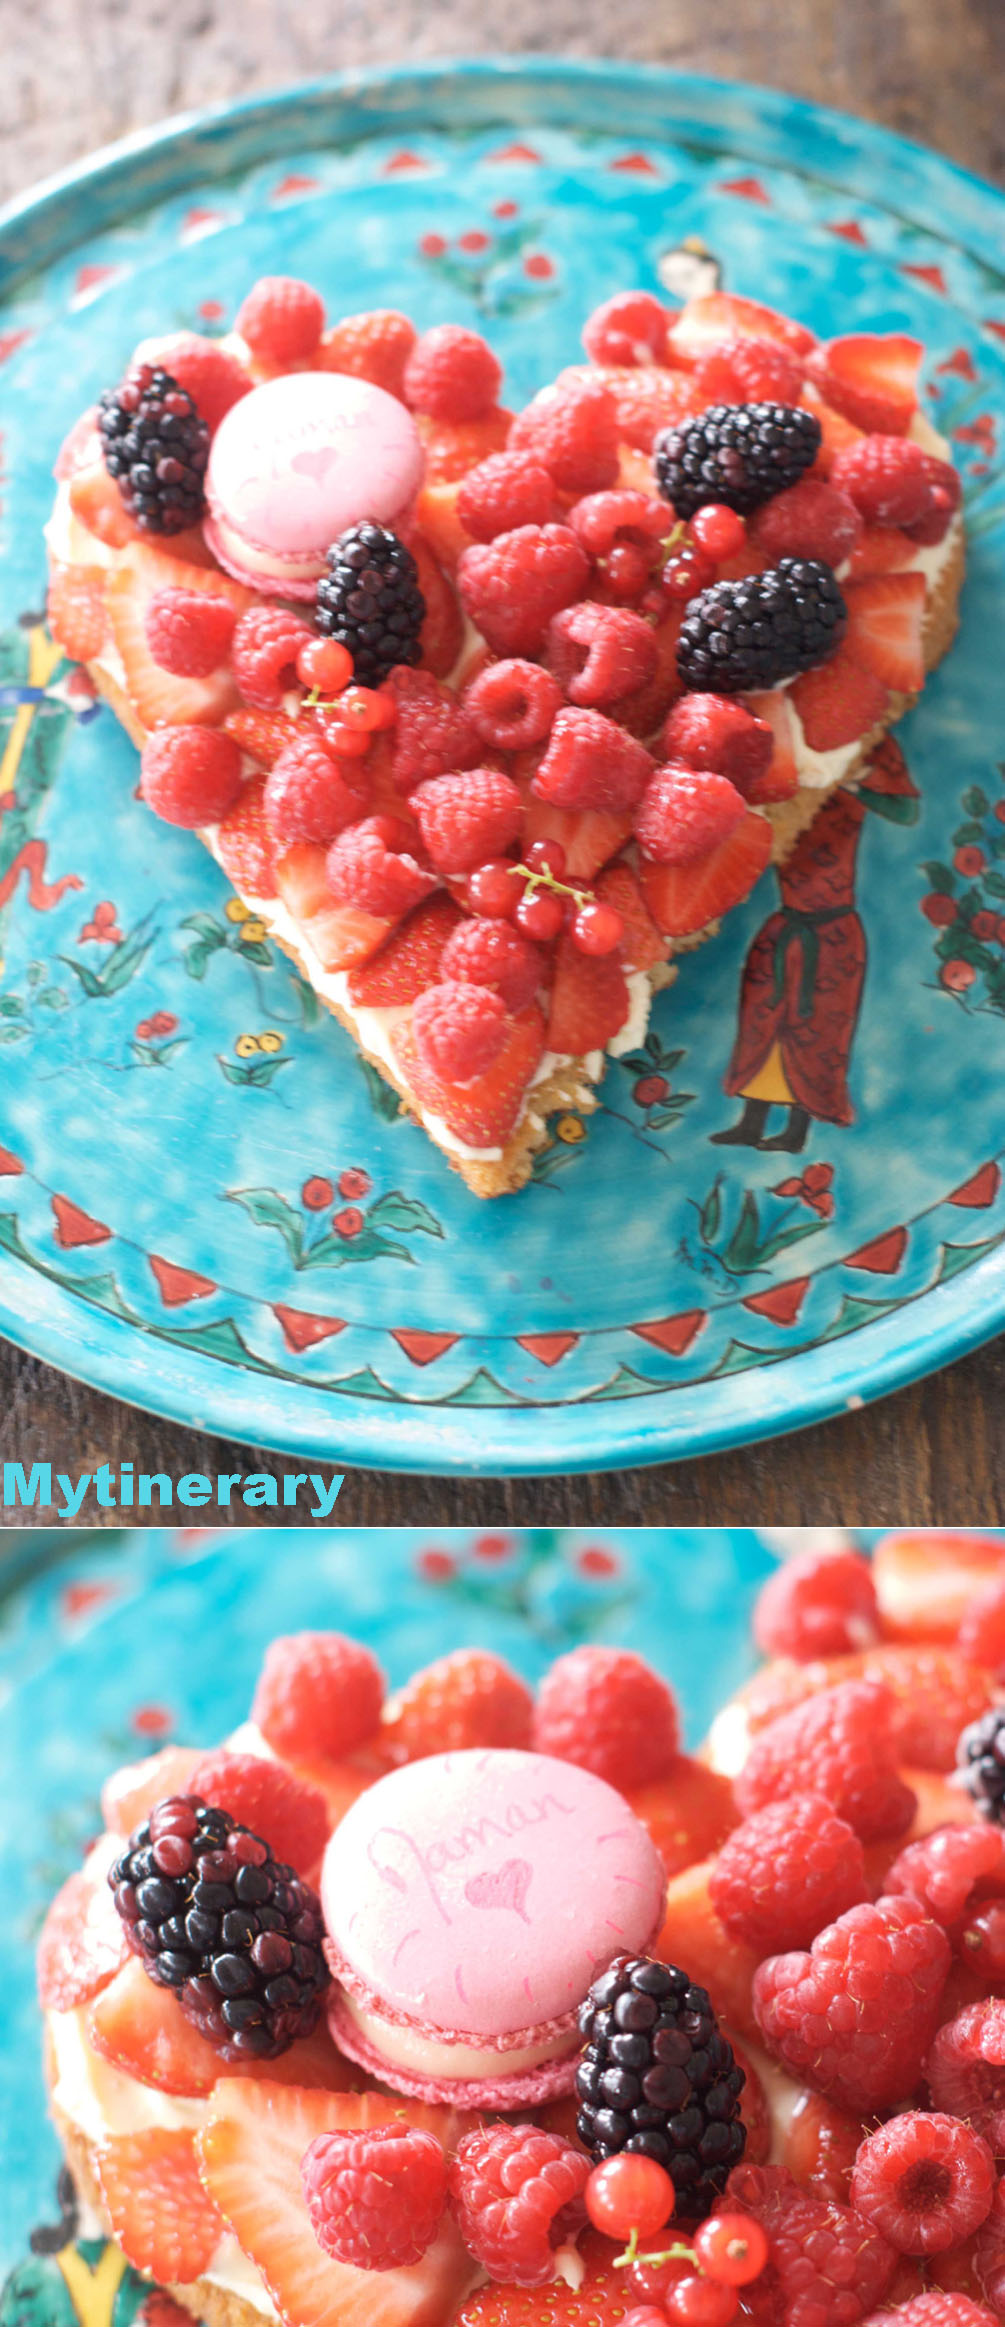 Www.detours.typepad.com - DIY Mother's Day cake 3